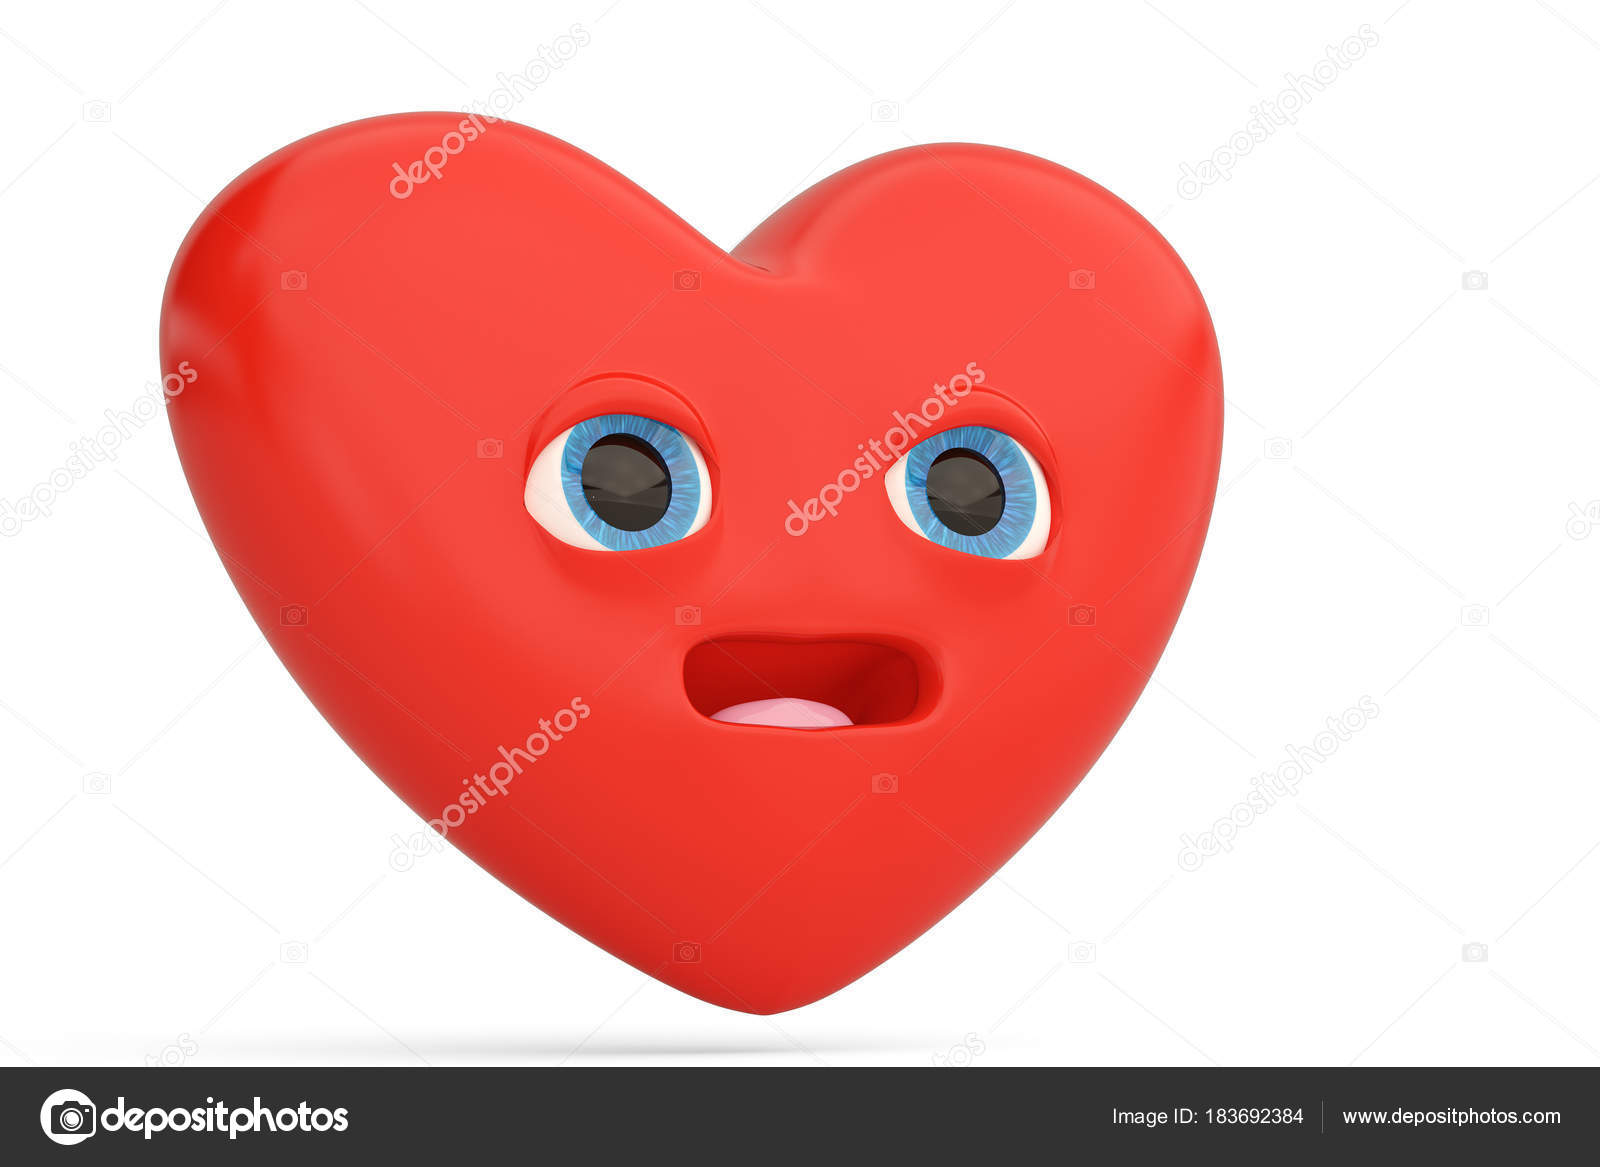 Surprised Heart Emoticon With Heart Emoji3d Illustration Stock